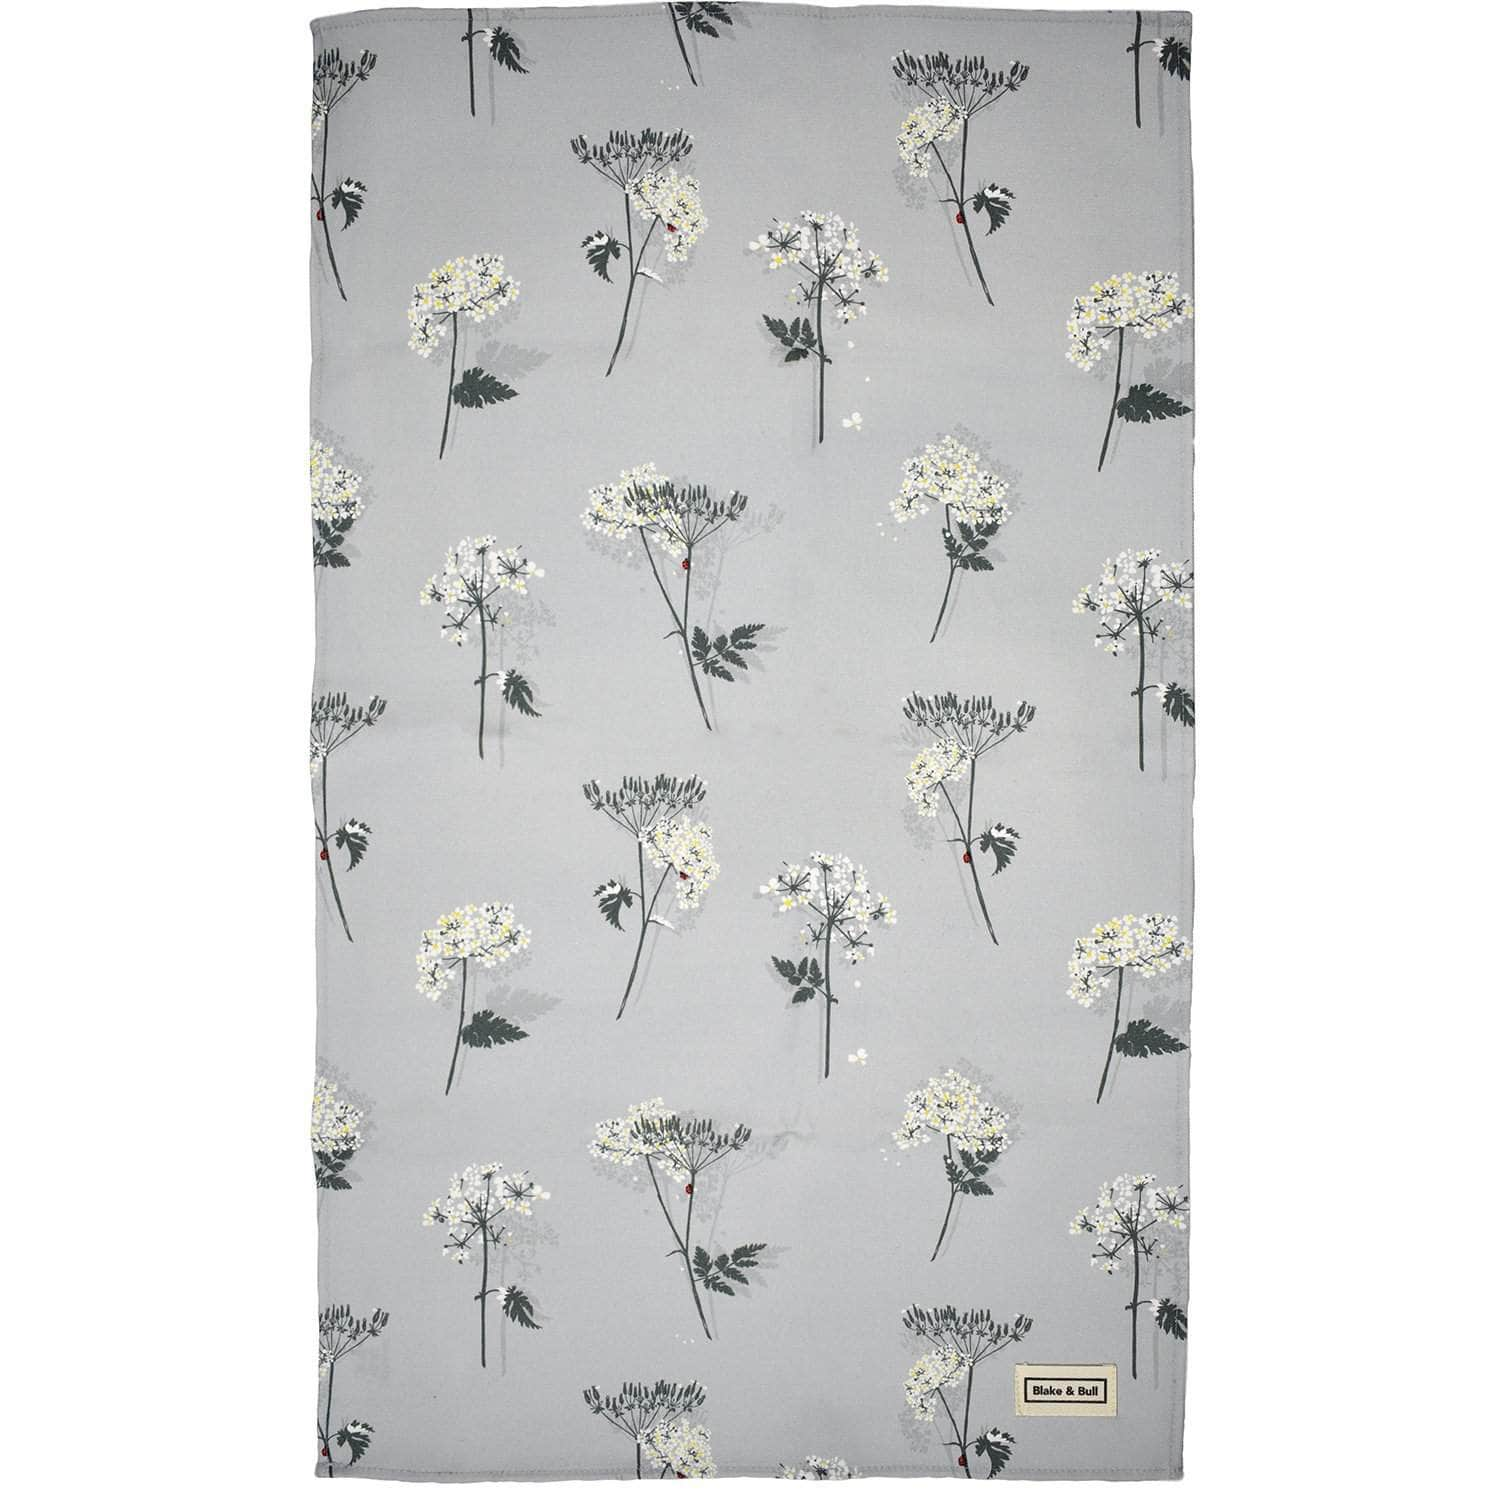 Tea towel 'Cow Parsley'